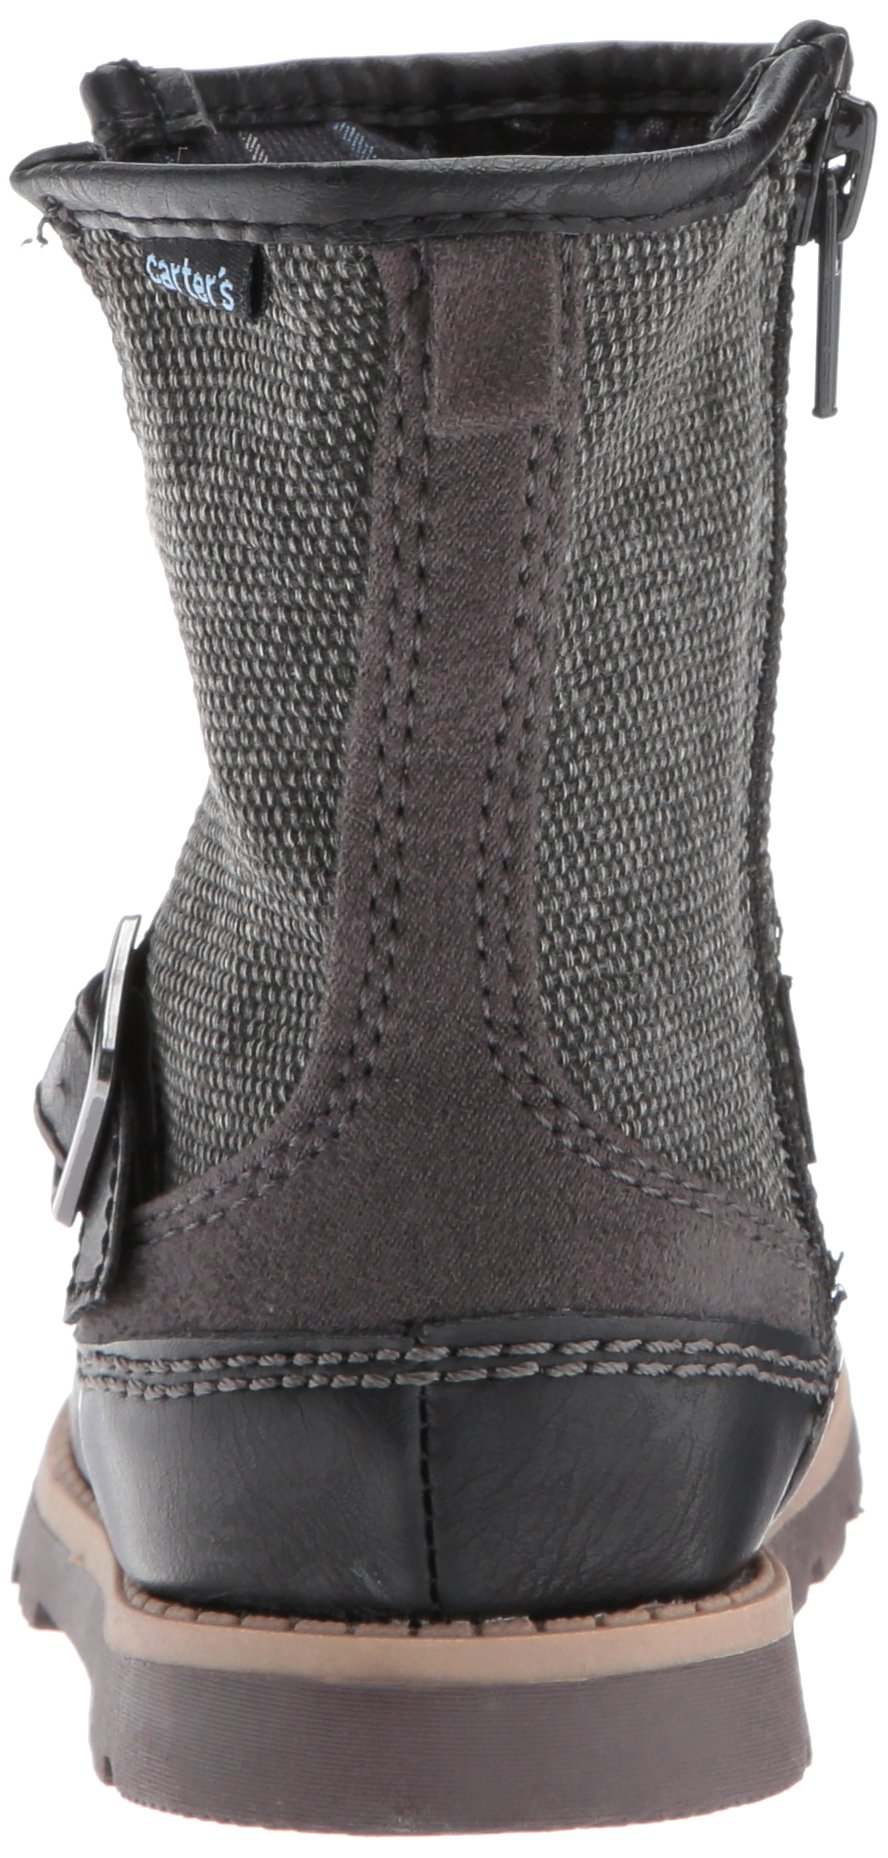 Carter's Boys' Galaway Fashion Boot, Black/Grey, 11 M US Little Kid by Carter's (Image #2)